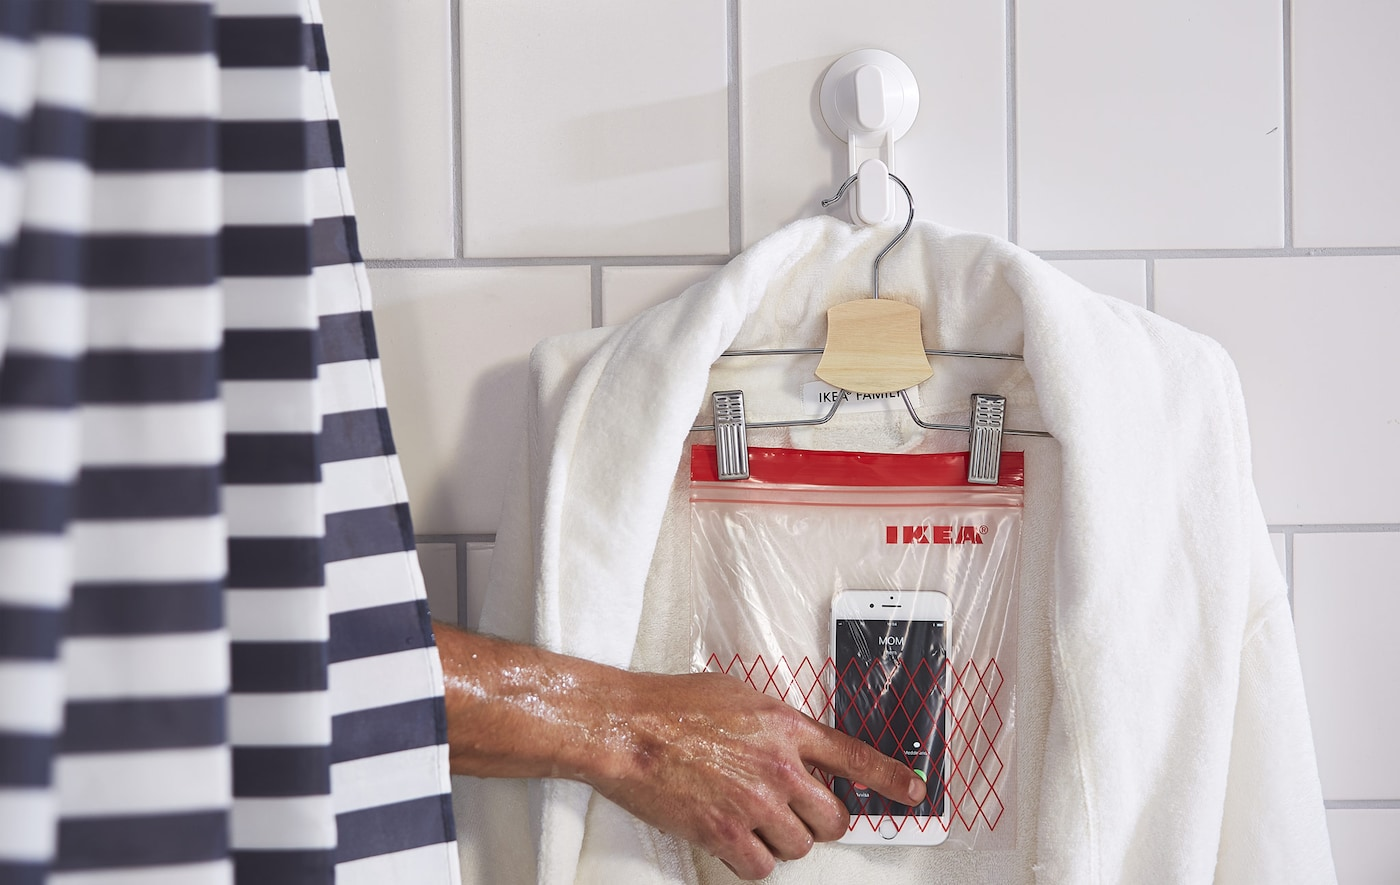 Wish you had a bathroom phone holder? You can easily make one with IKEA products like BUMERANG trouser/skirt hanger. Put your phone in a plastic bag. Zip it closed. Clip it on the hanger. You're all set, and your phone is protected from steam.